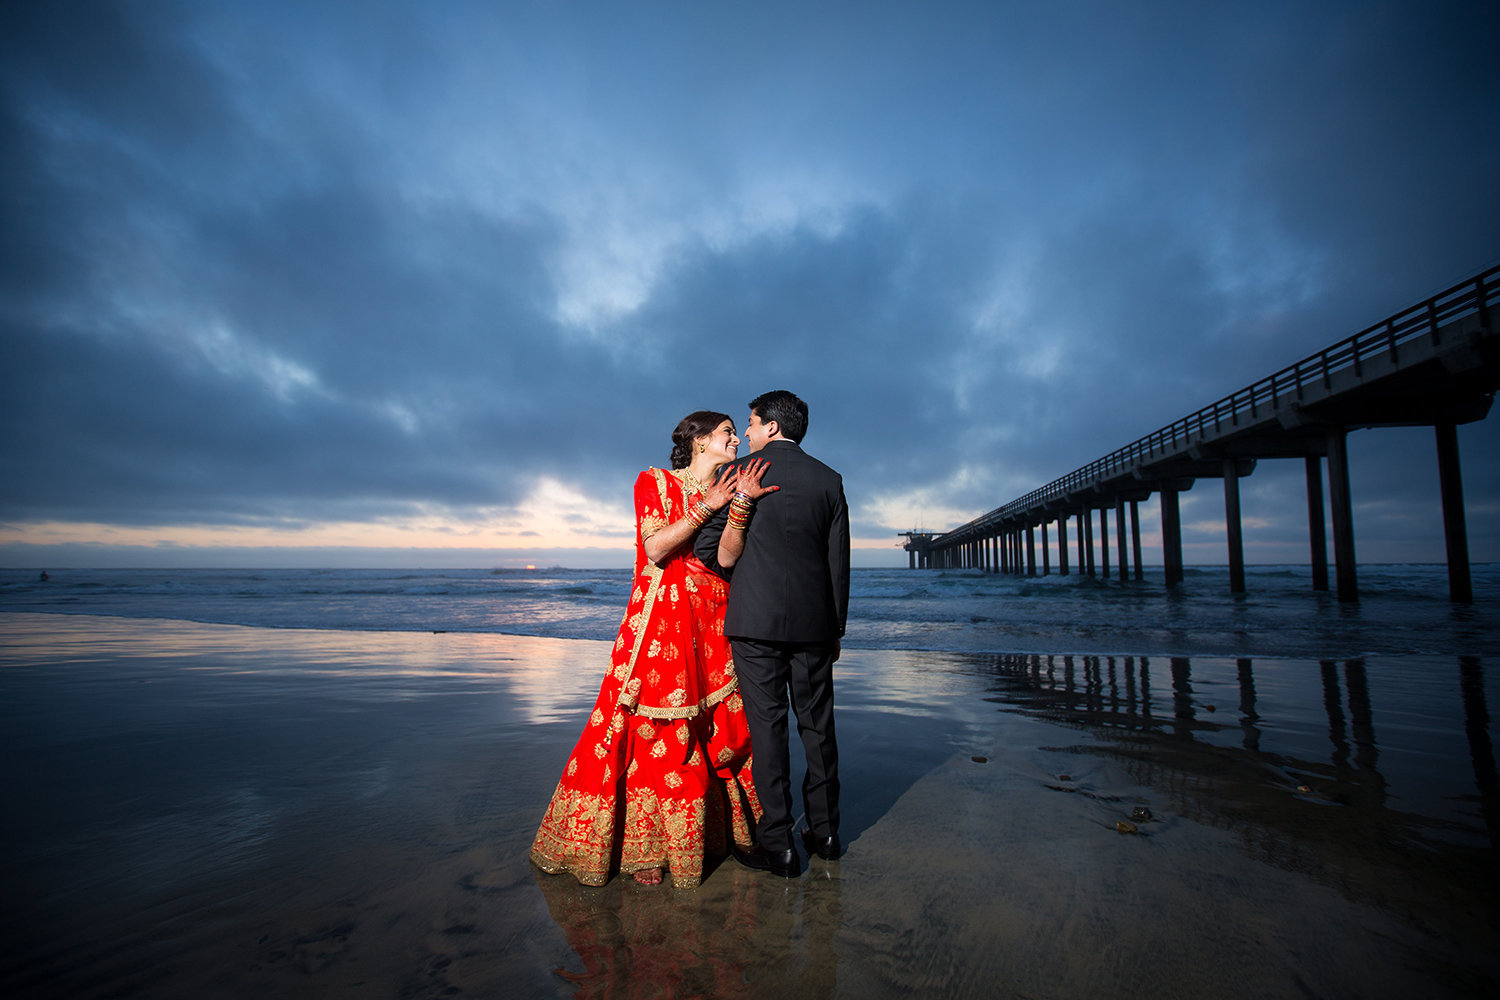 Sunset Wedding Portrait at Scripps Pier of Bright Hindu Couple